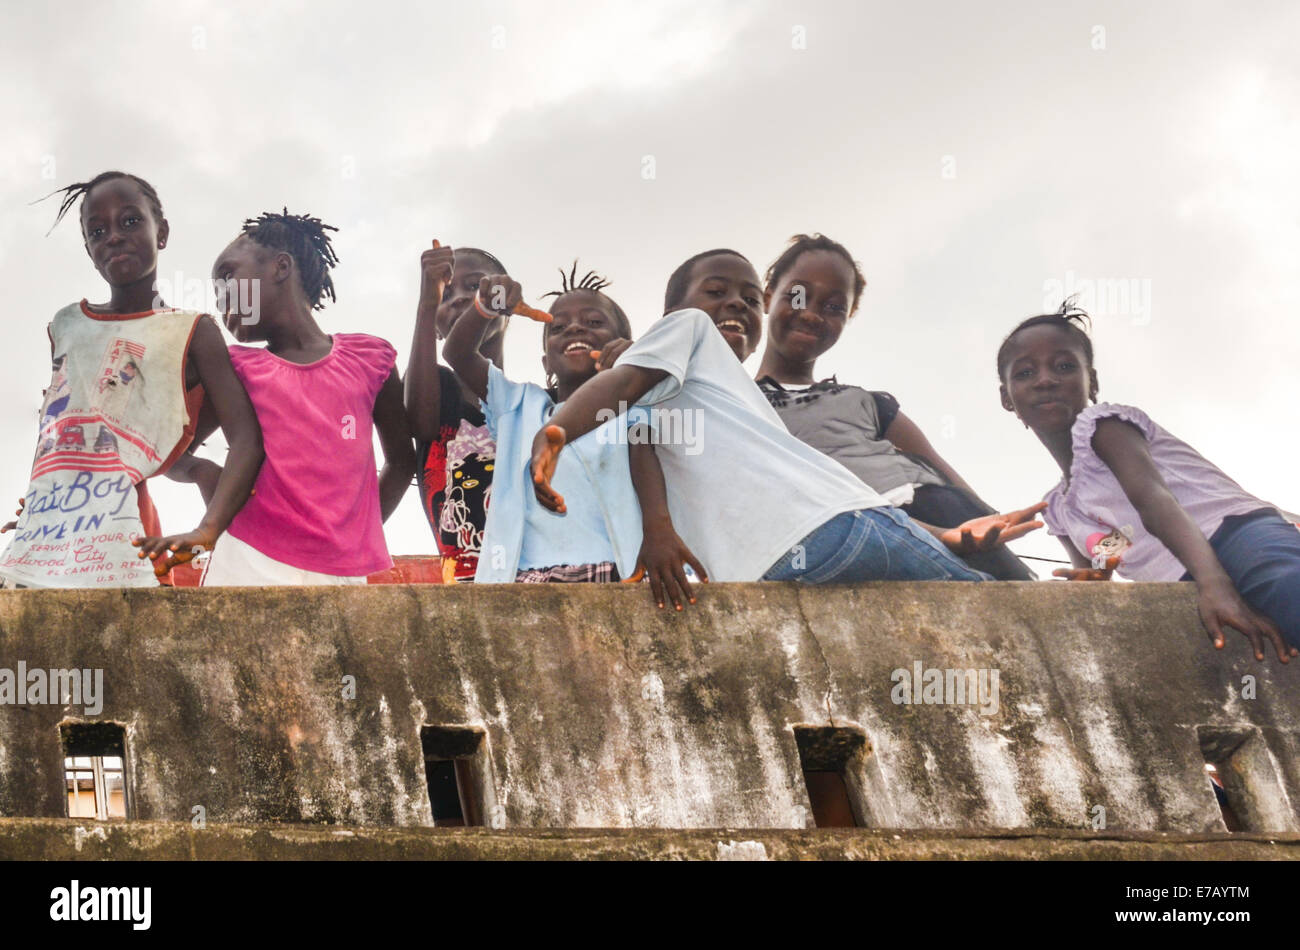 Young girls posing in the streets of Freetown, Sierra Leone, Africa - Stock Image